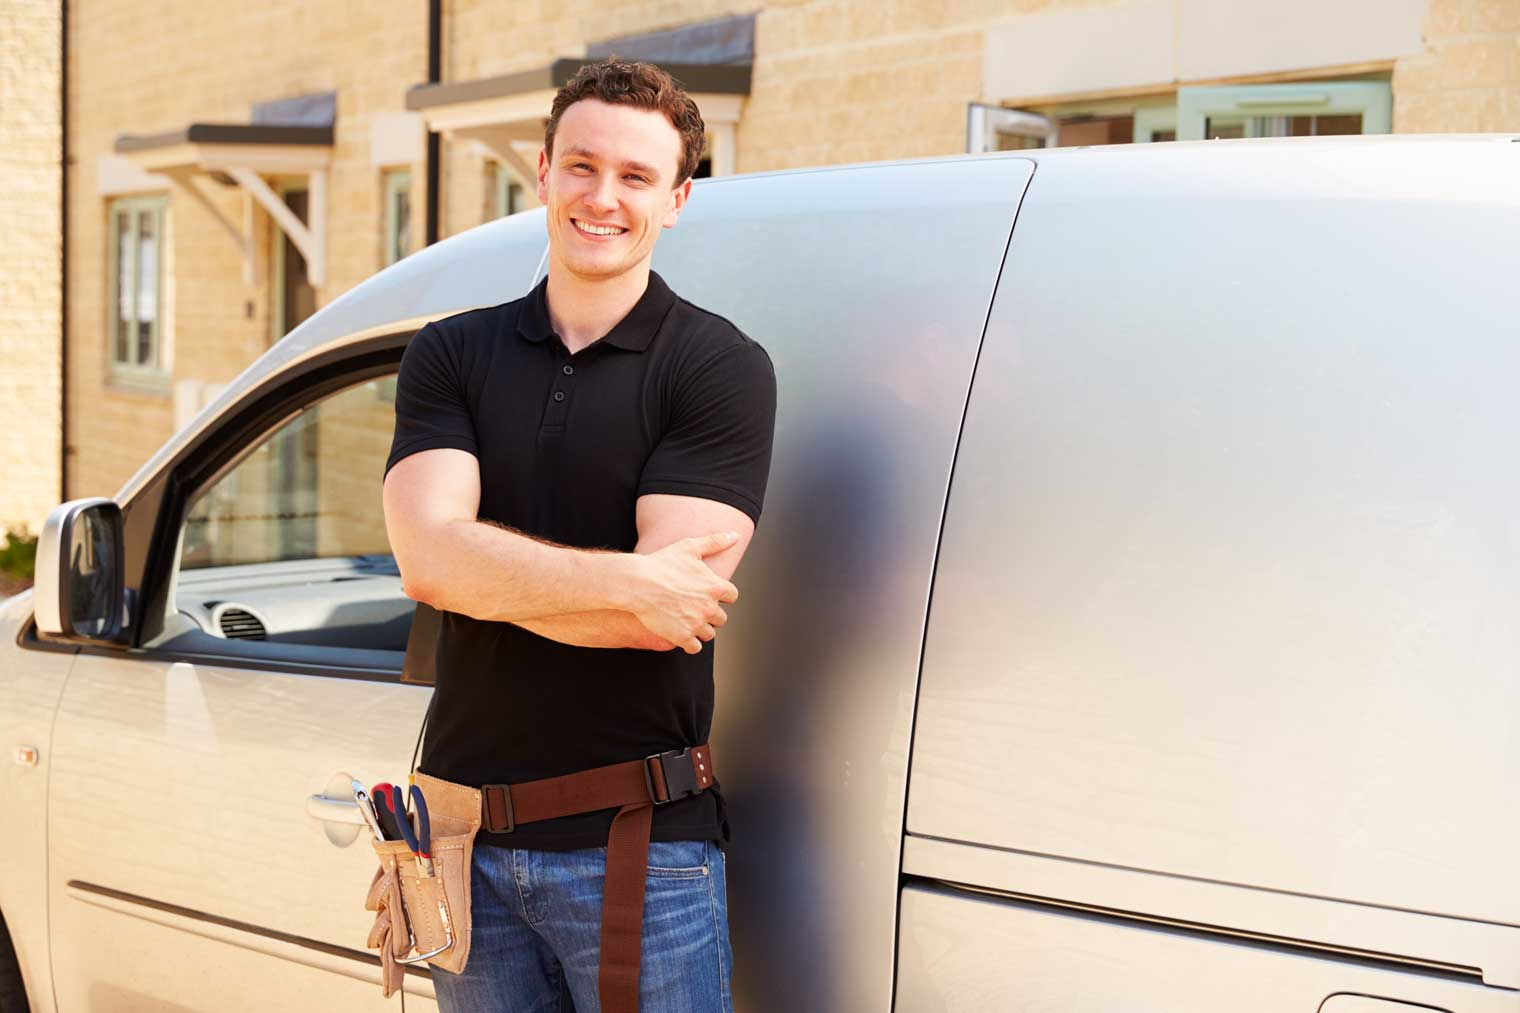 If you need a van insurance quote, contact us today